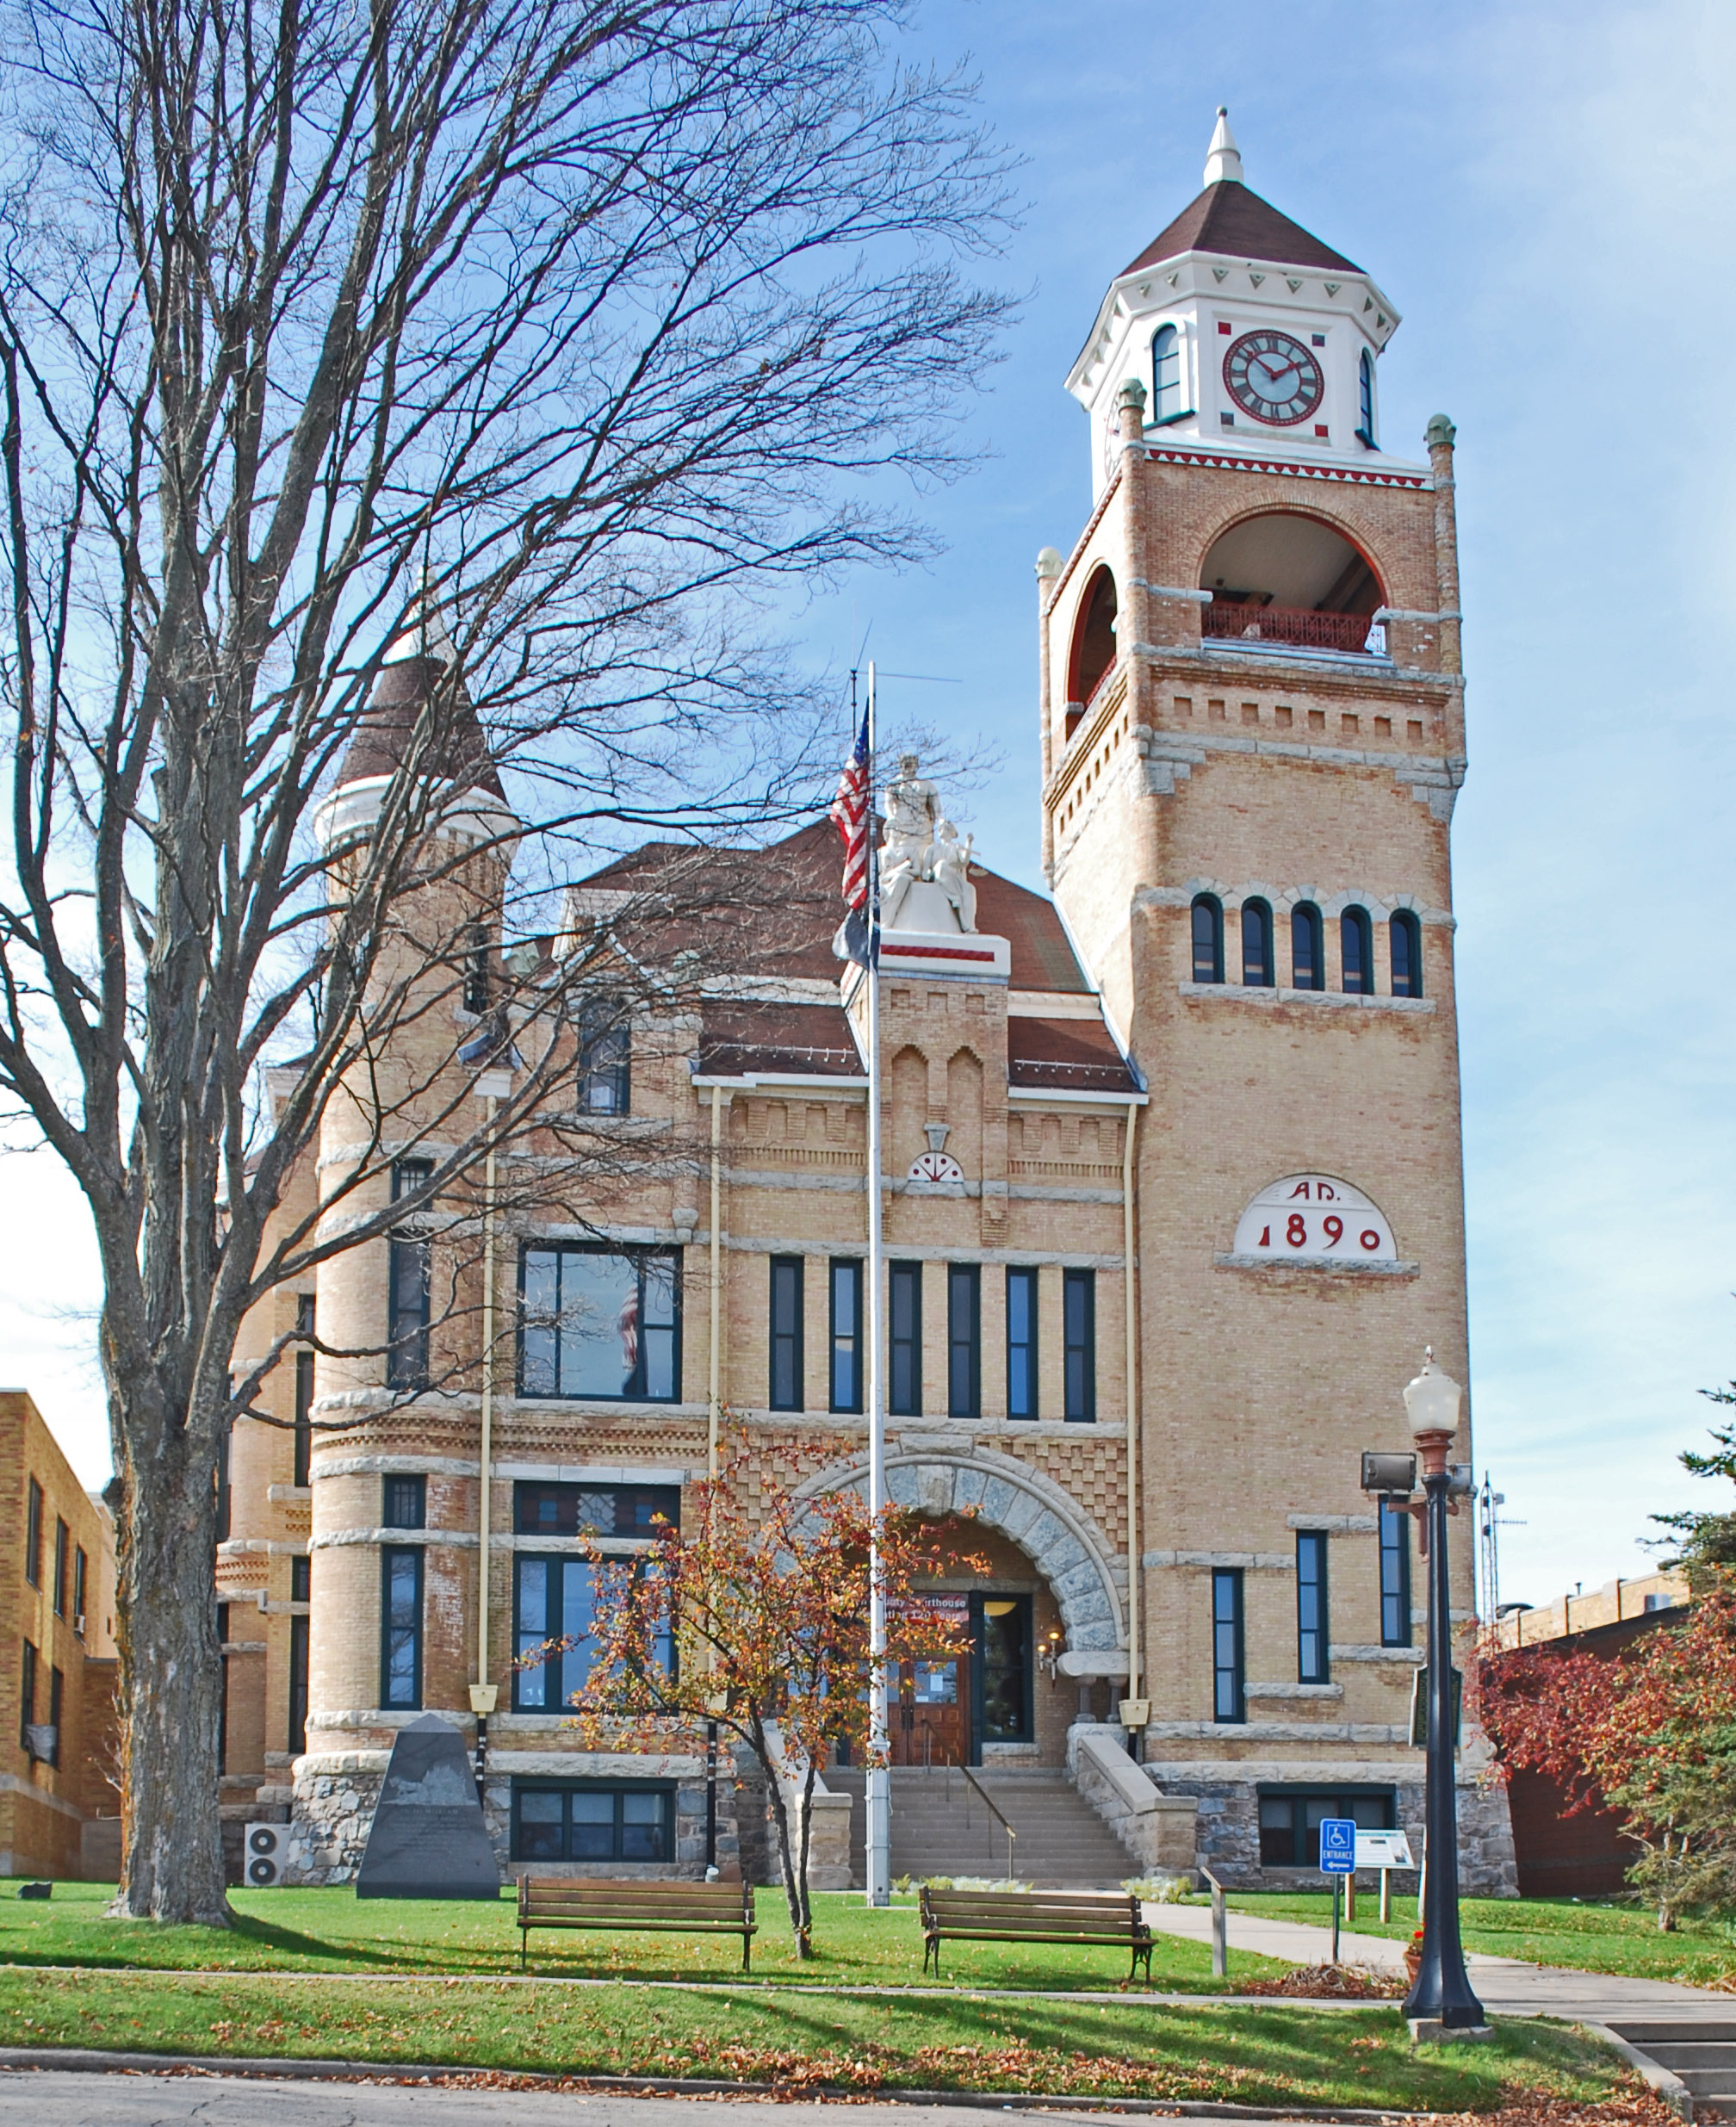 Michigan schoolcraft county germfask - Richardsonian Romanesque Style